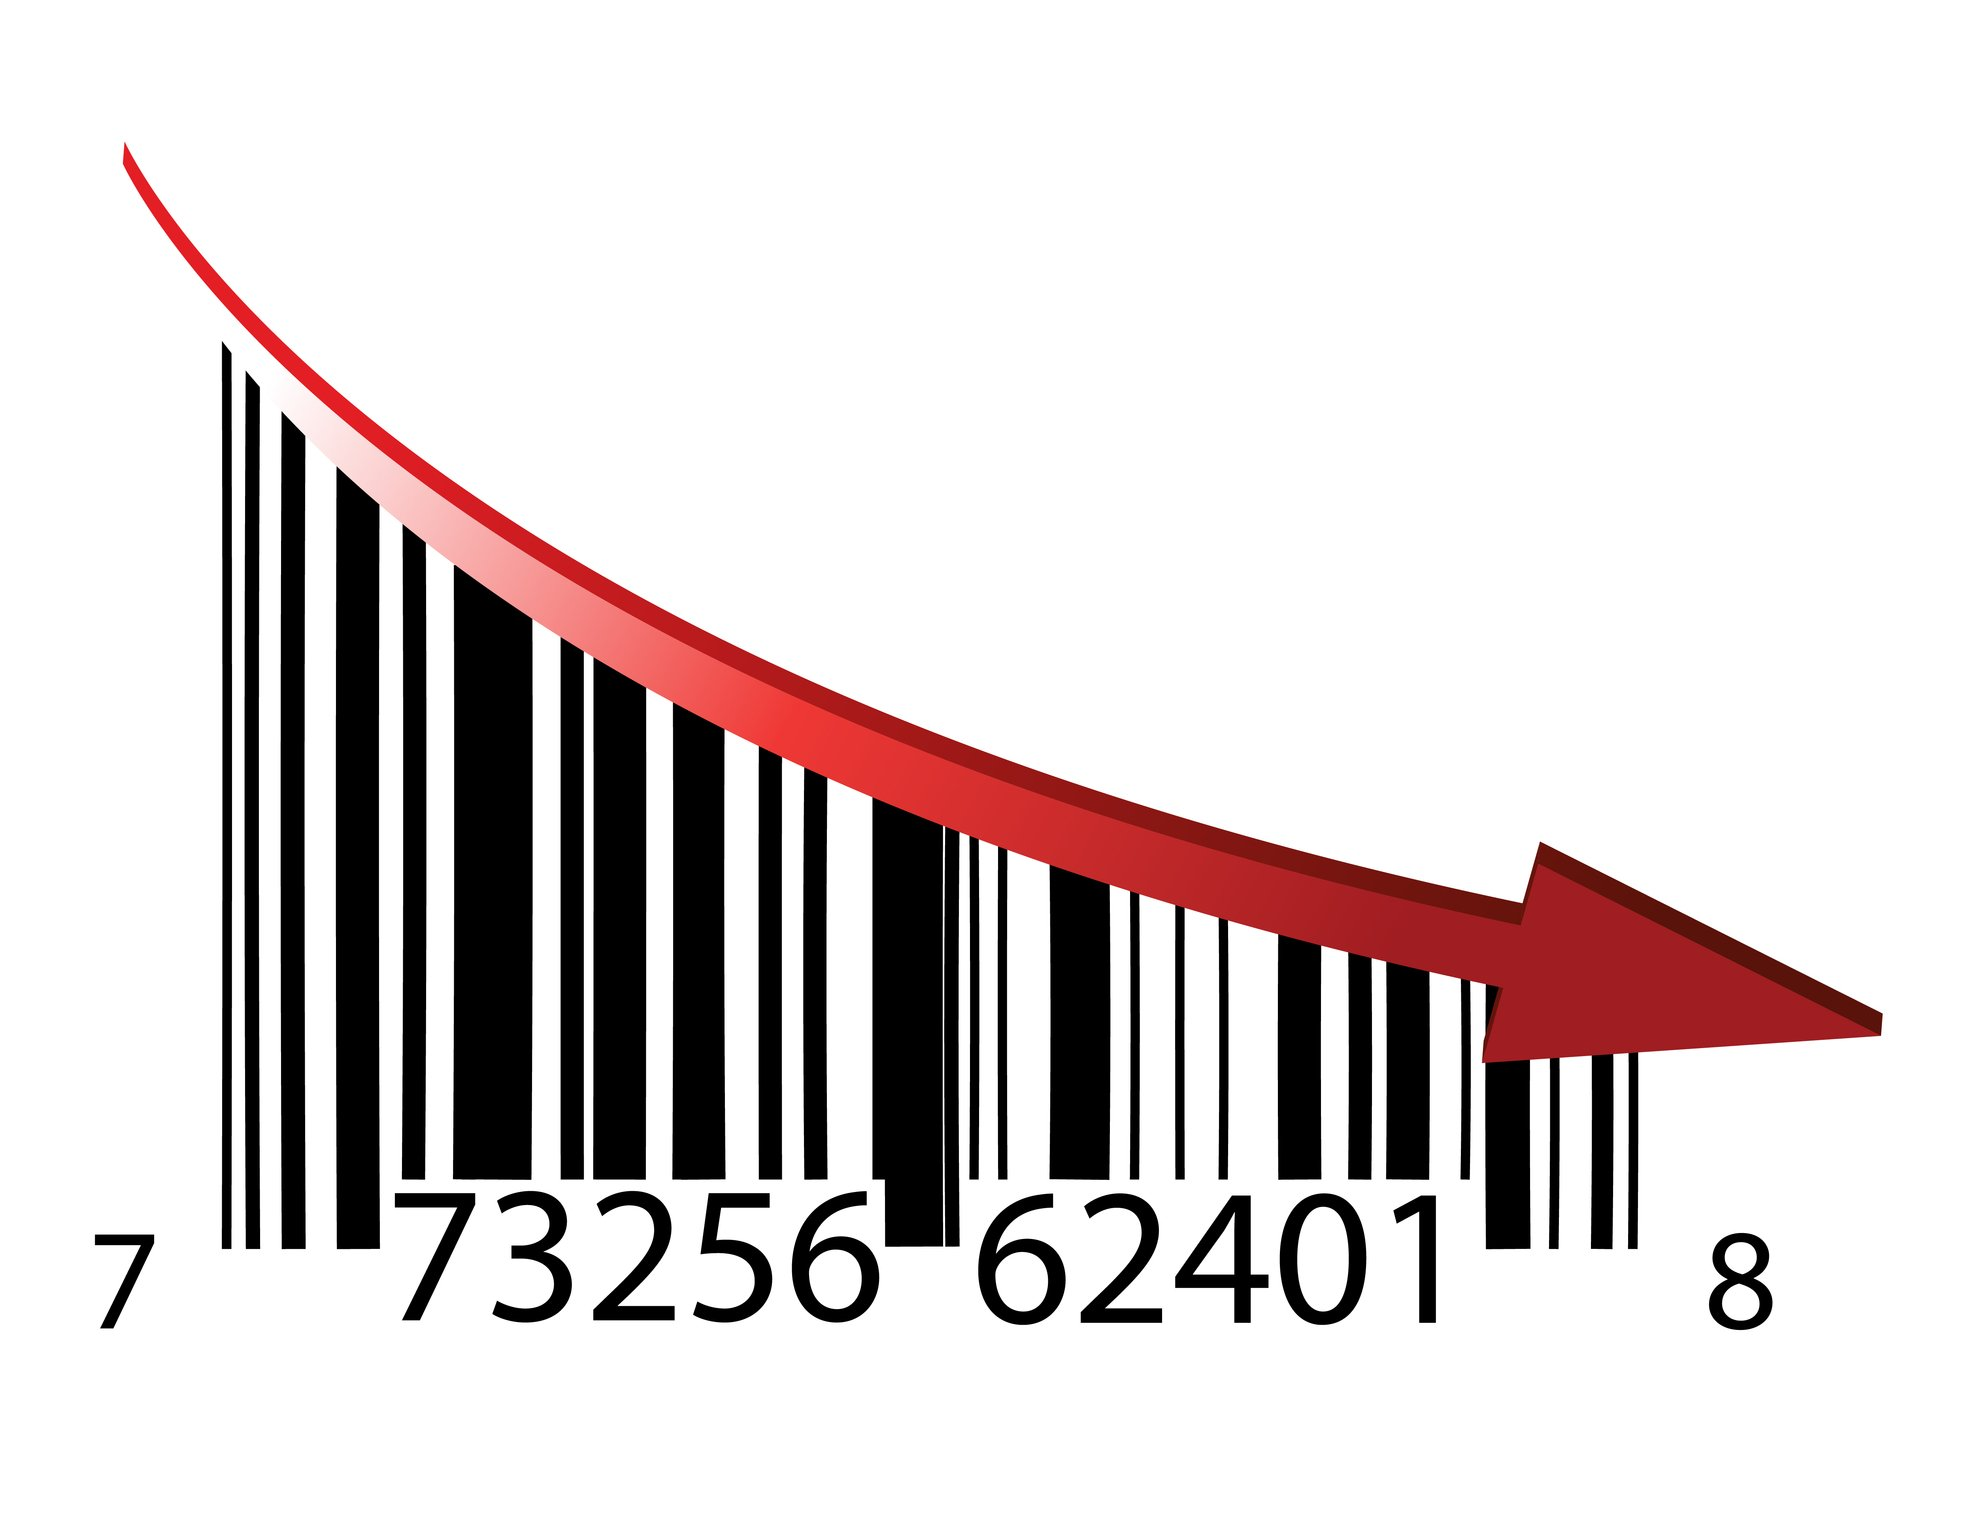 barcode scanner repair costs reduce